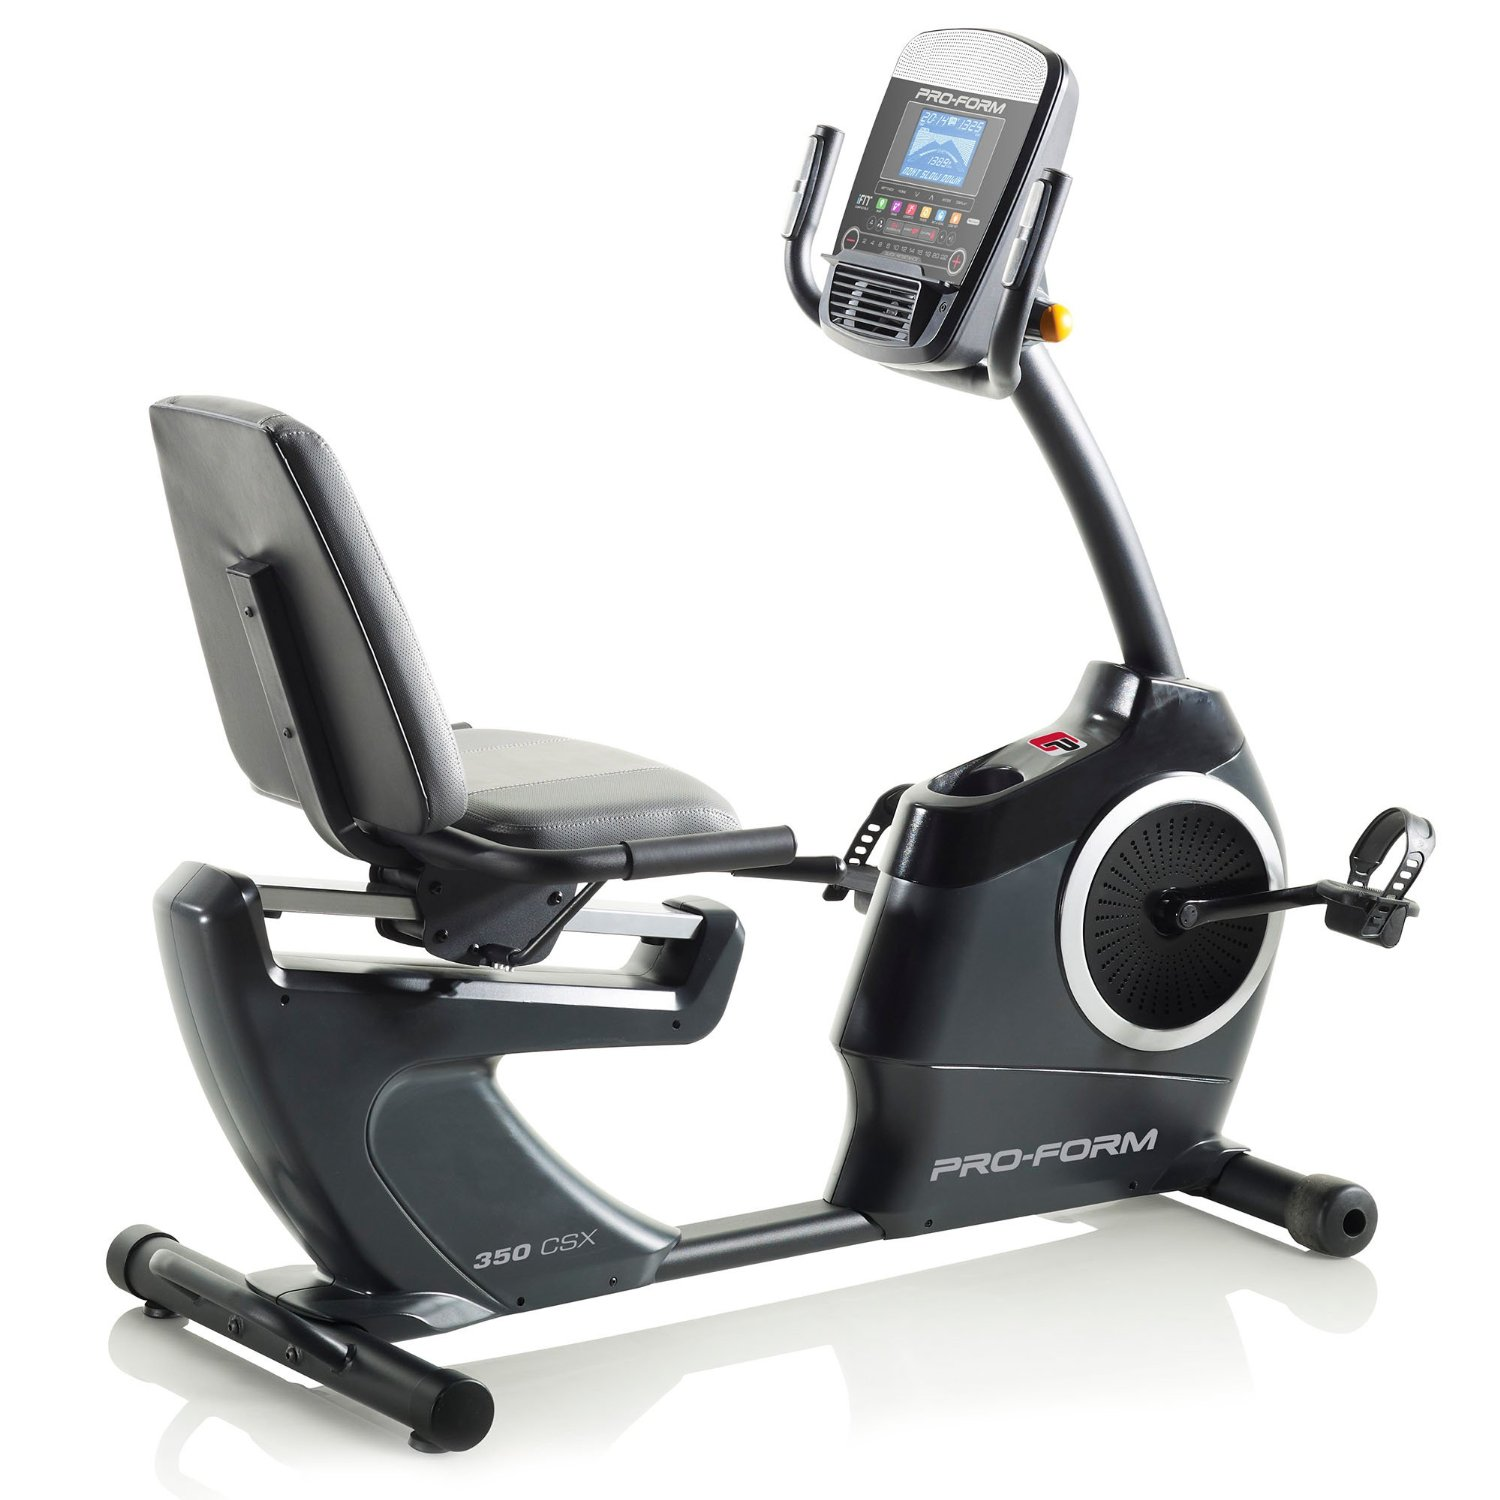 Pro Form 350 CSX Recumbent Bike Review